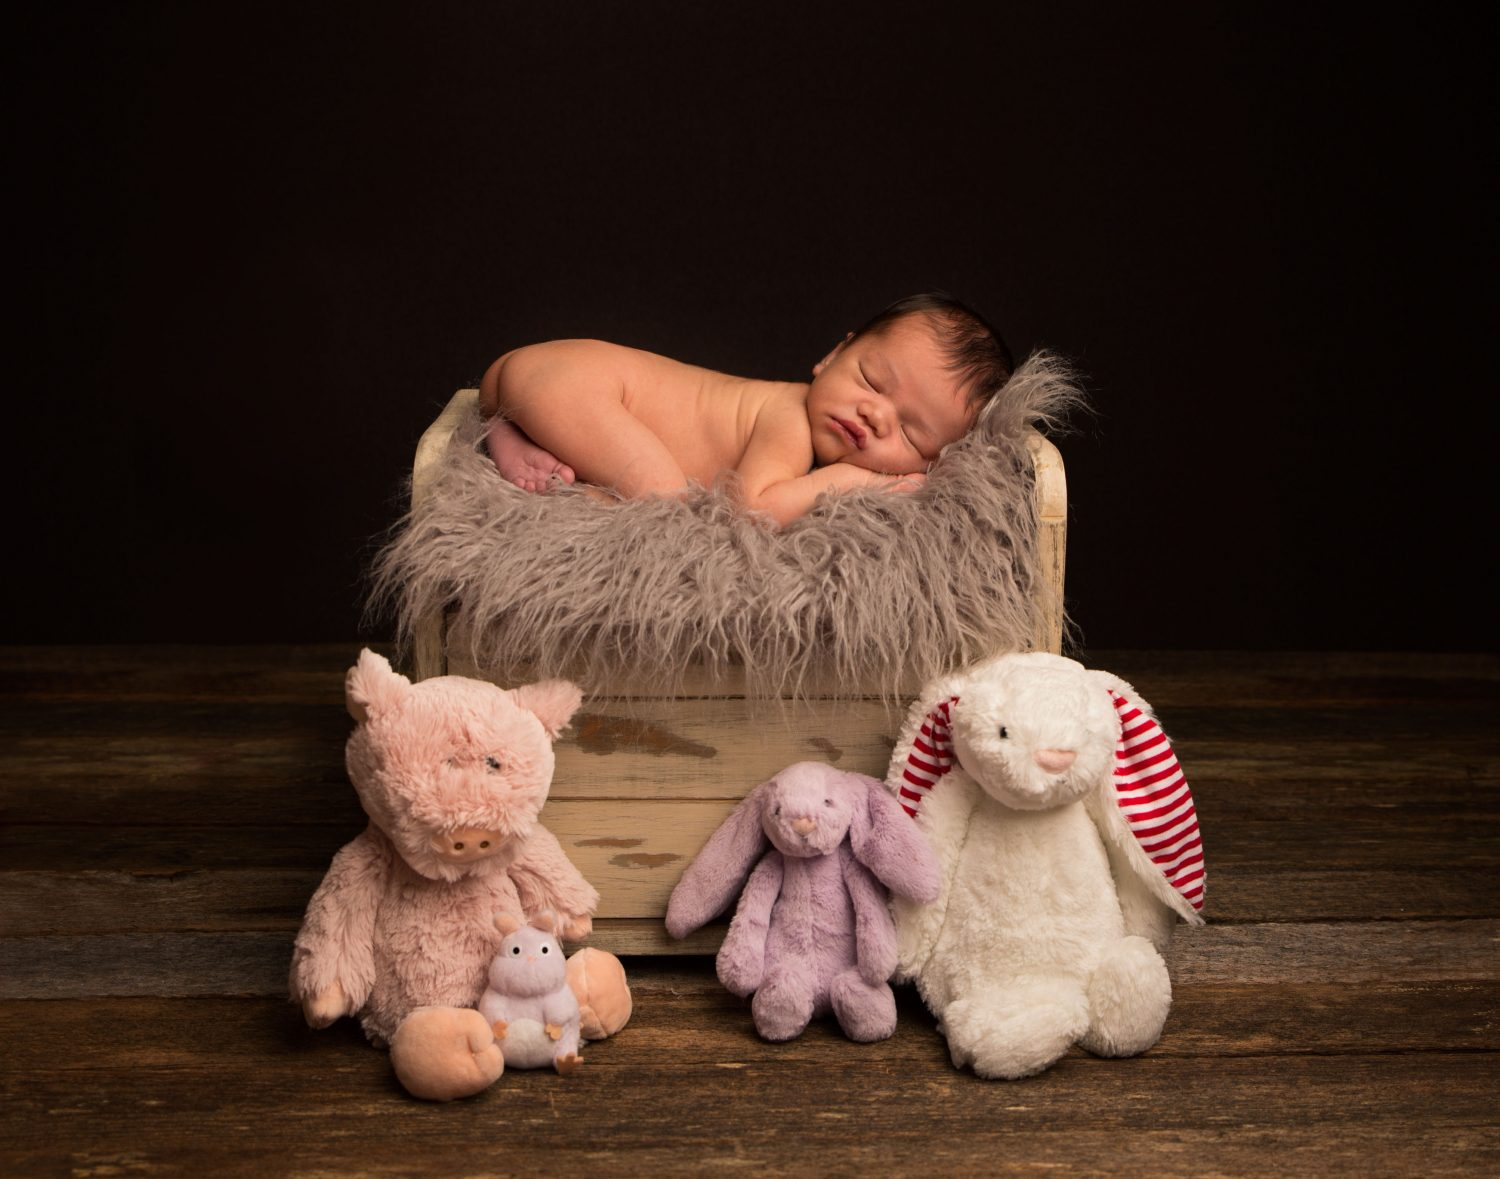 baby with stuffies photo courtenaybaby with stuffies photo courtenay